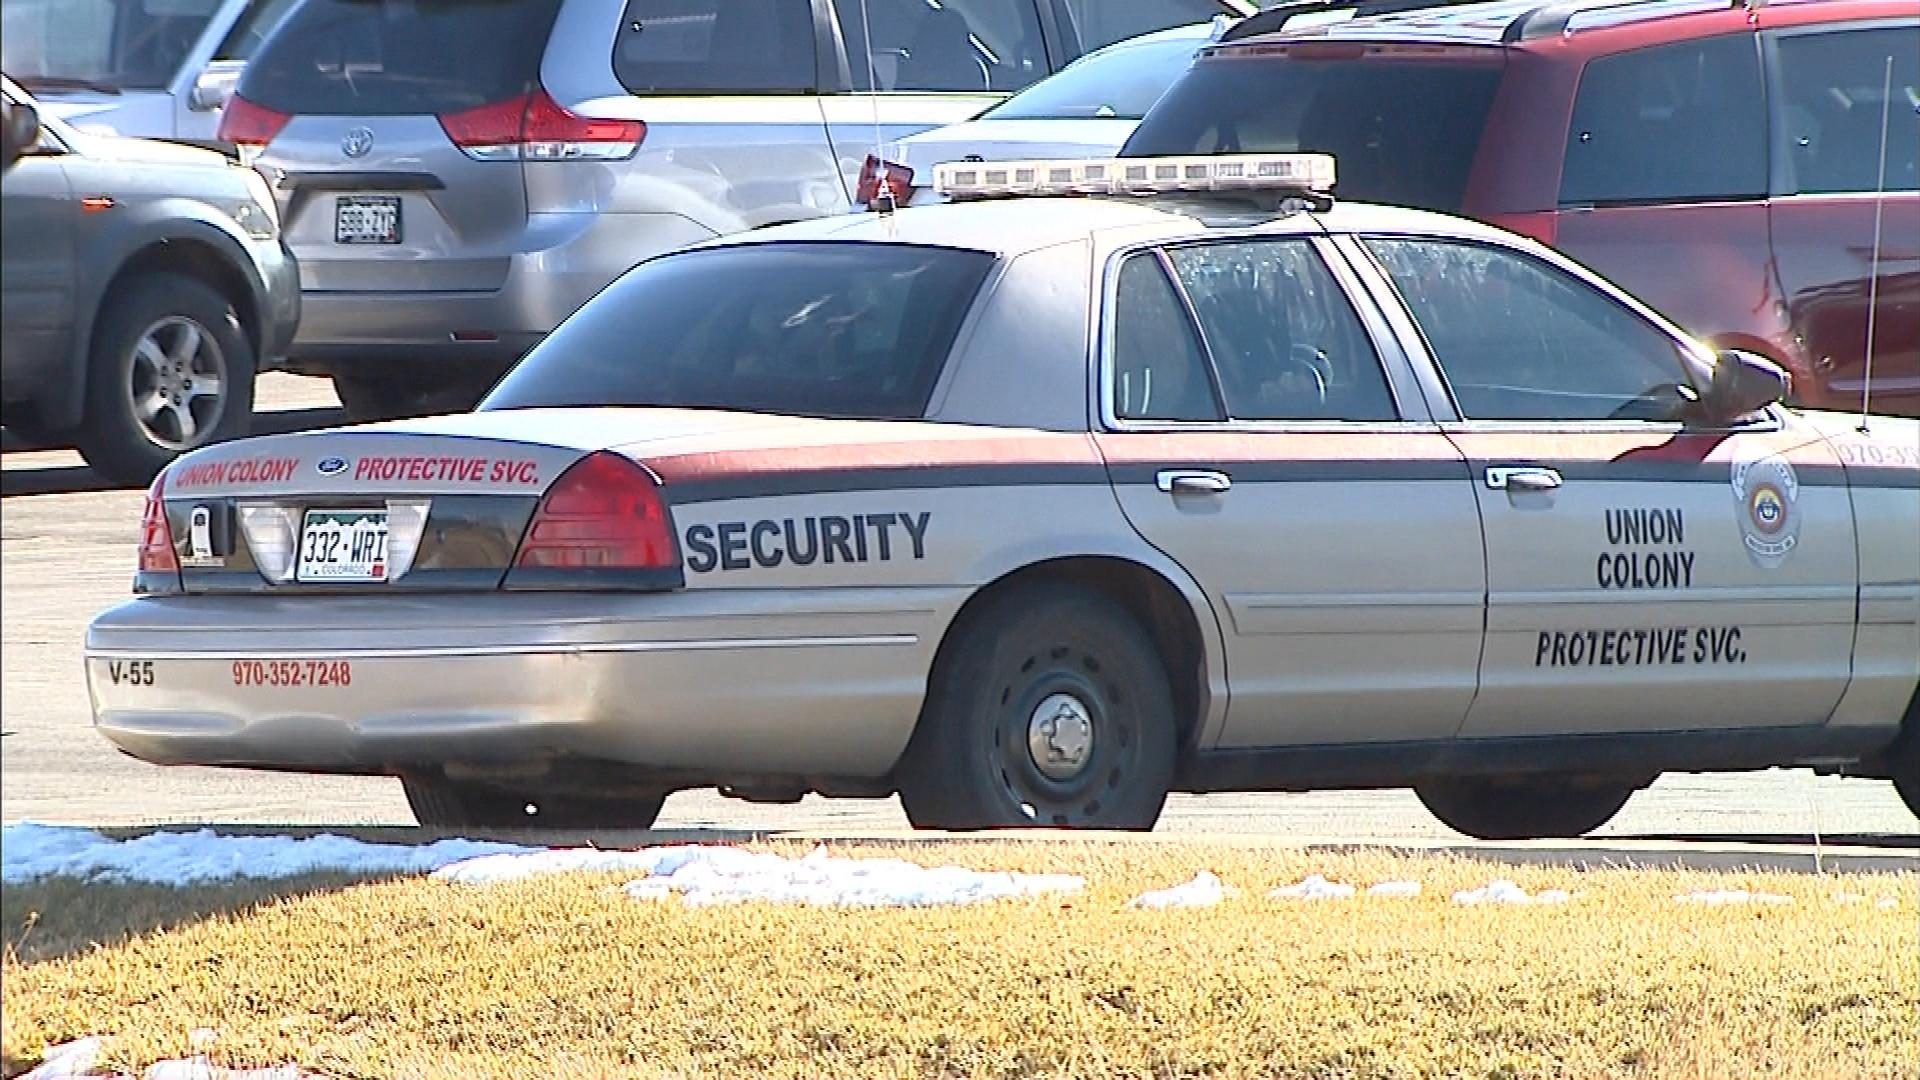 Part-time Security at Frontier Academy in Greeley (credit: CBS)